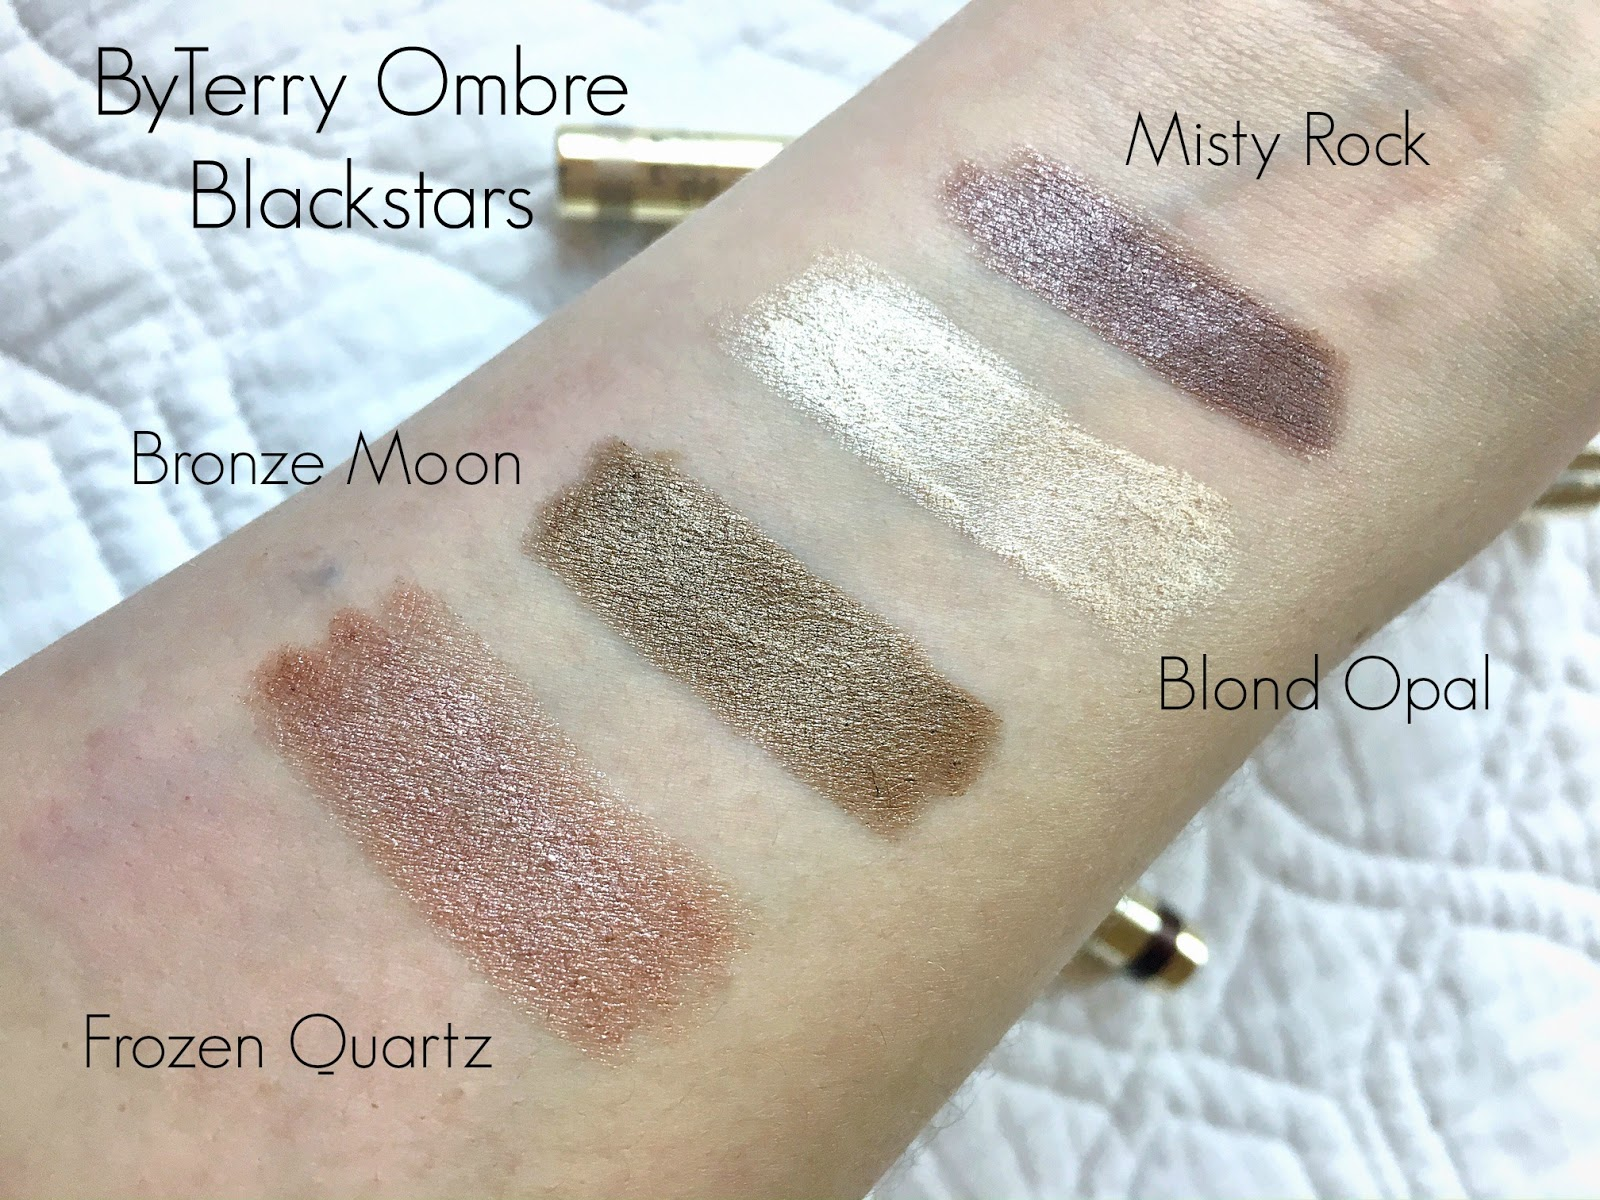 ByTerry Ombre Blackstar Swatches